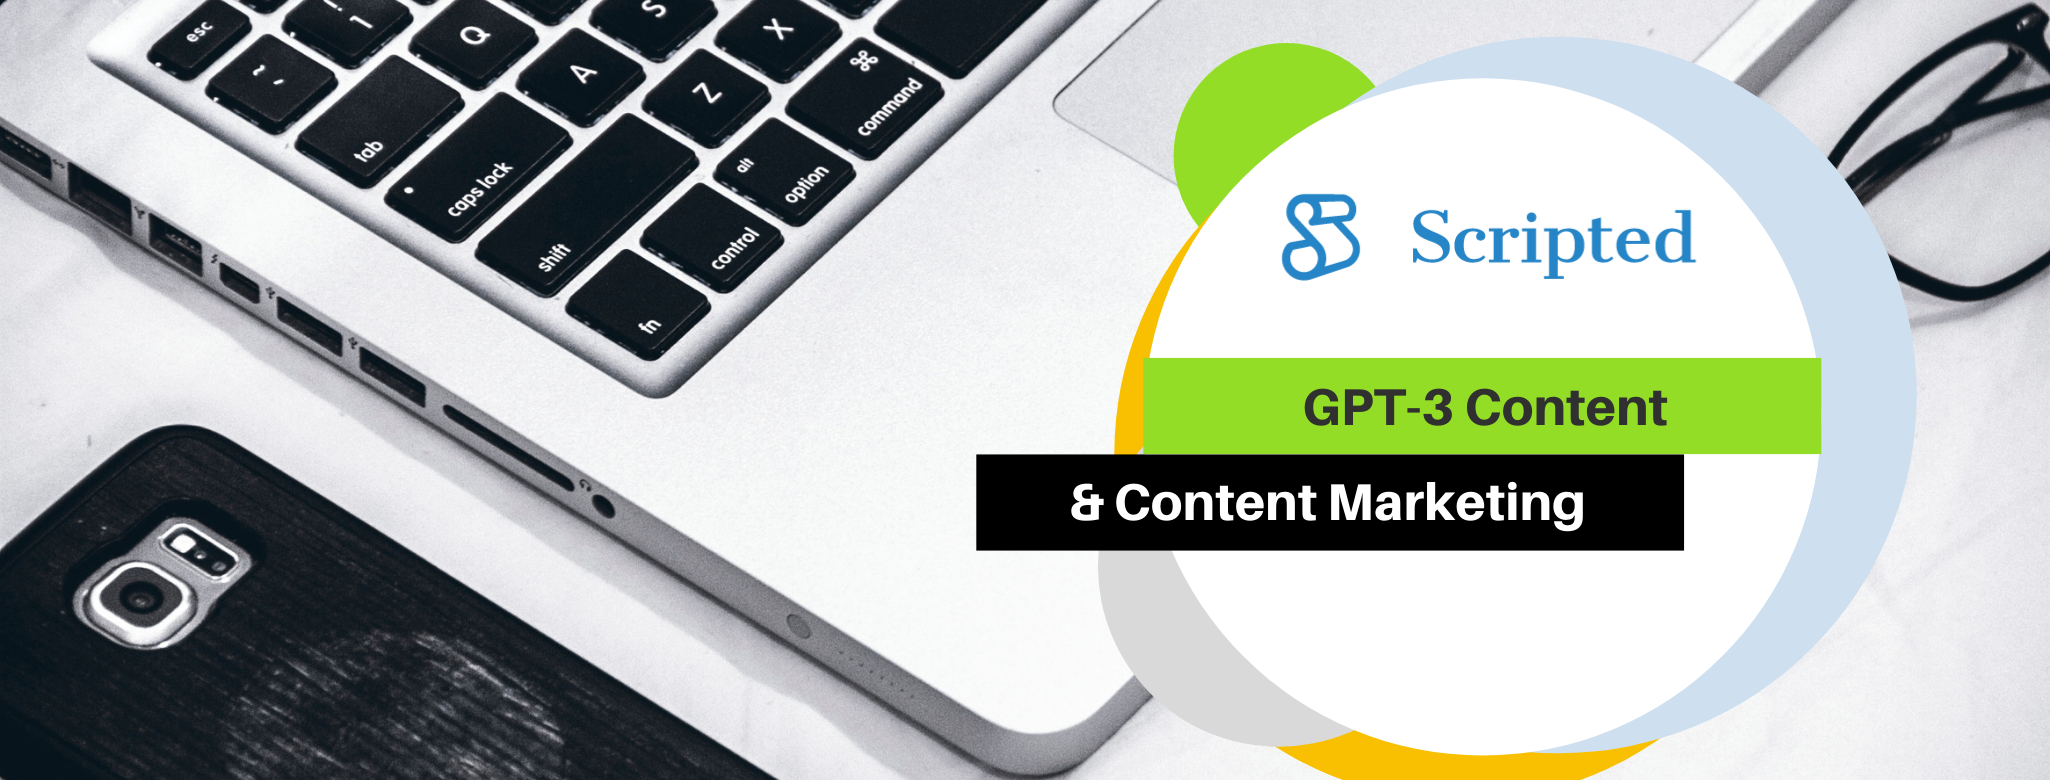 GPT-3 Content and The Future of Content Marketing